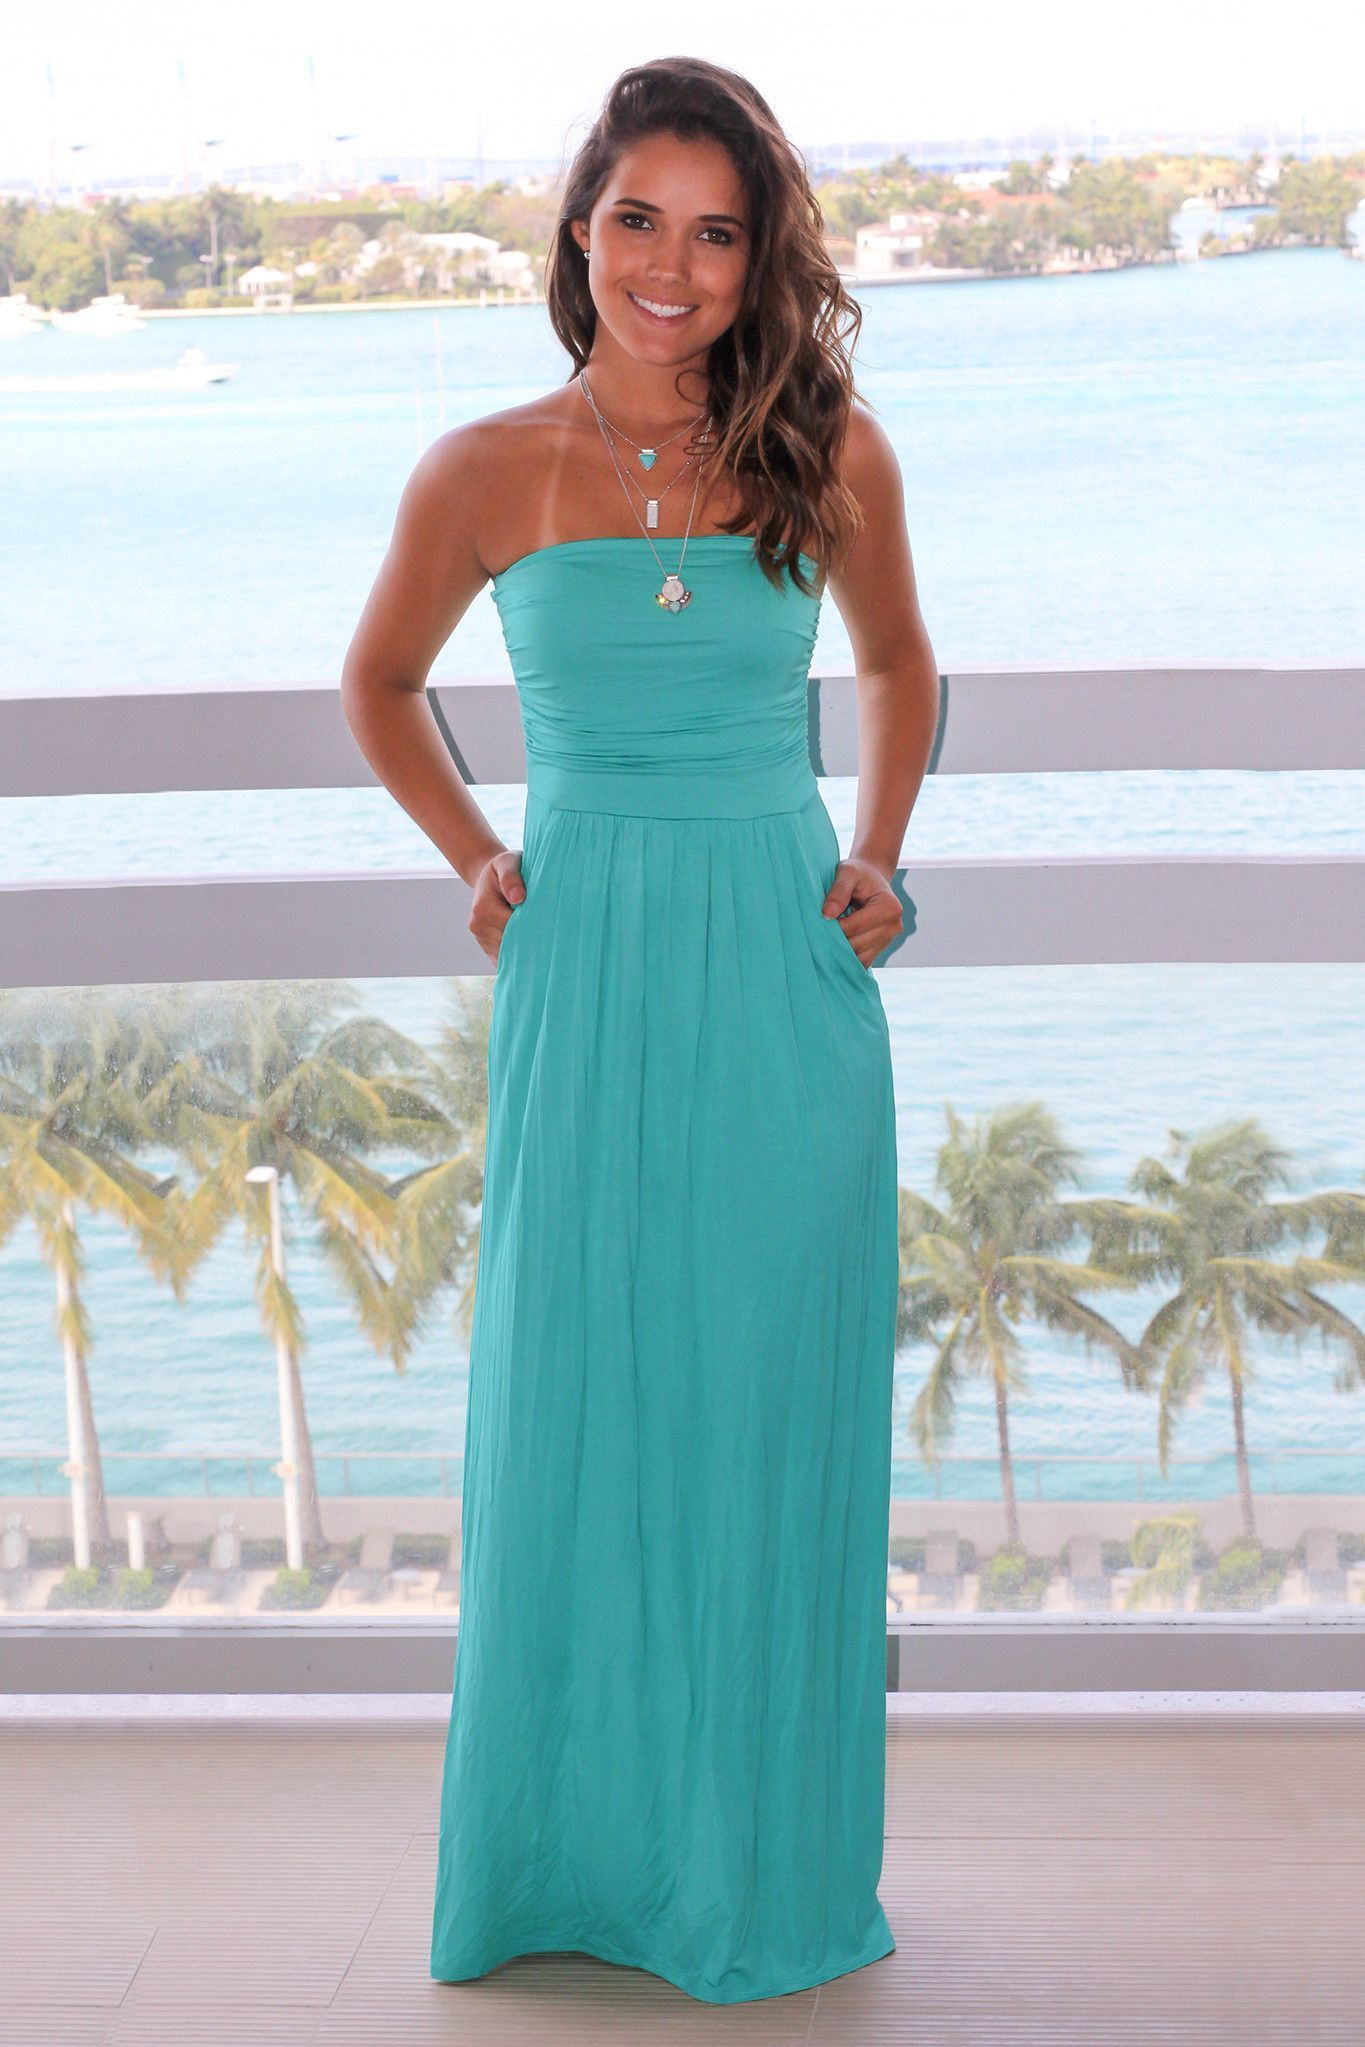 Strapless Turquoise Maxi Dress with Pockets | Maxi dresses ...